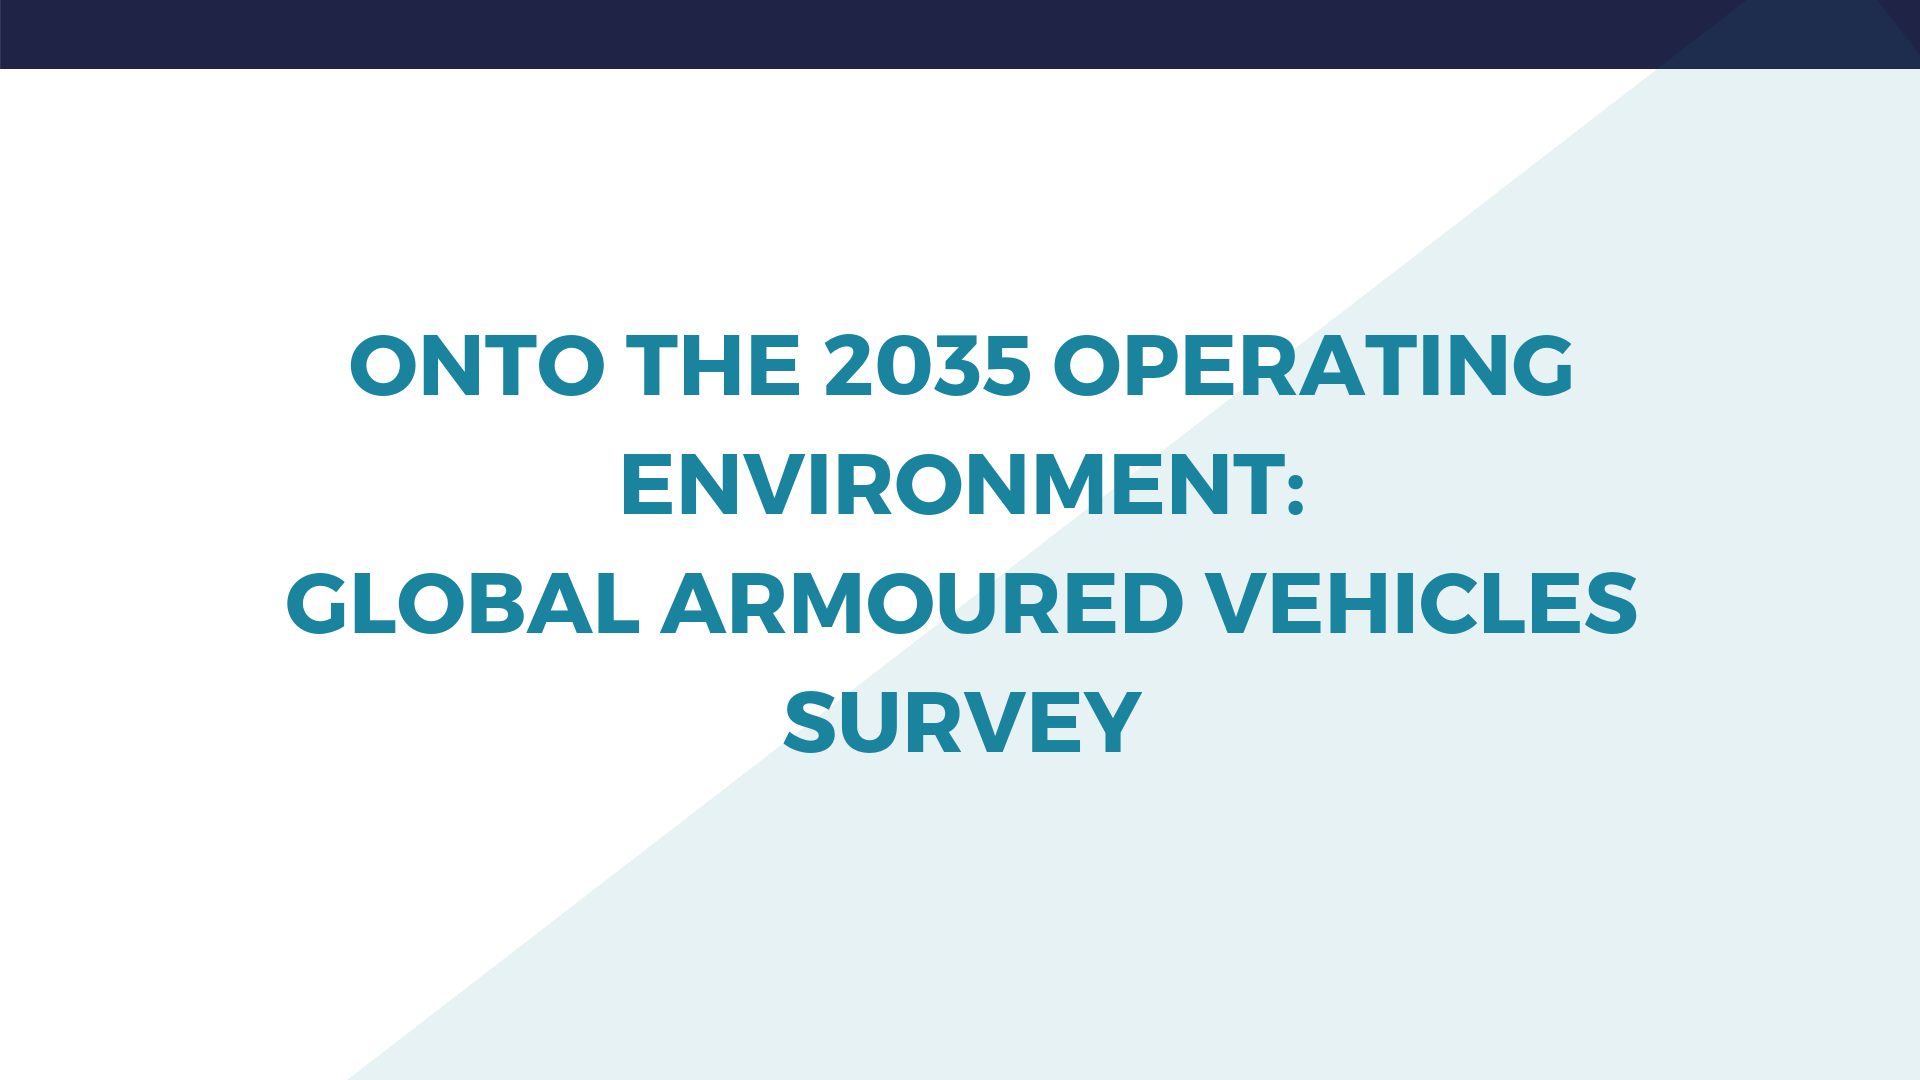 Onto the 2035 operating environment: Global armoured vehicles market survey